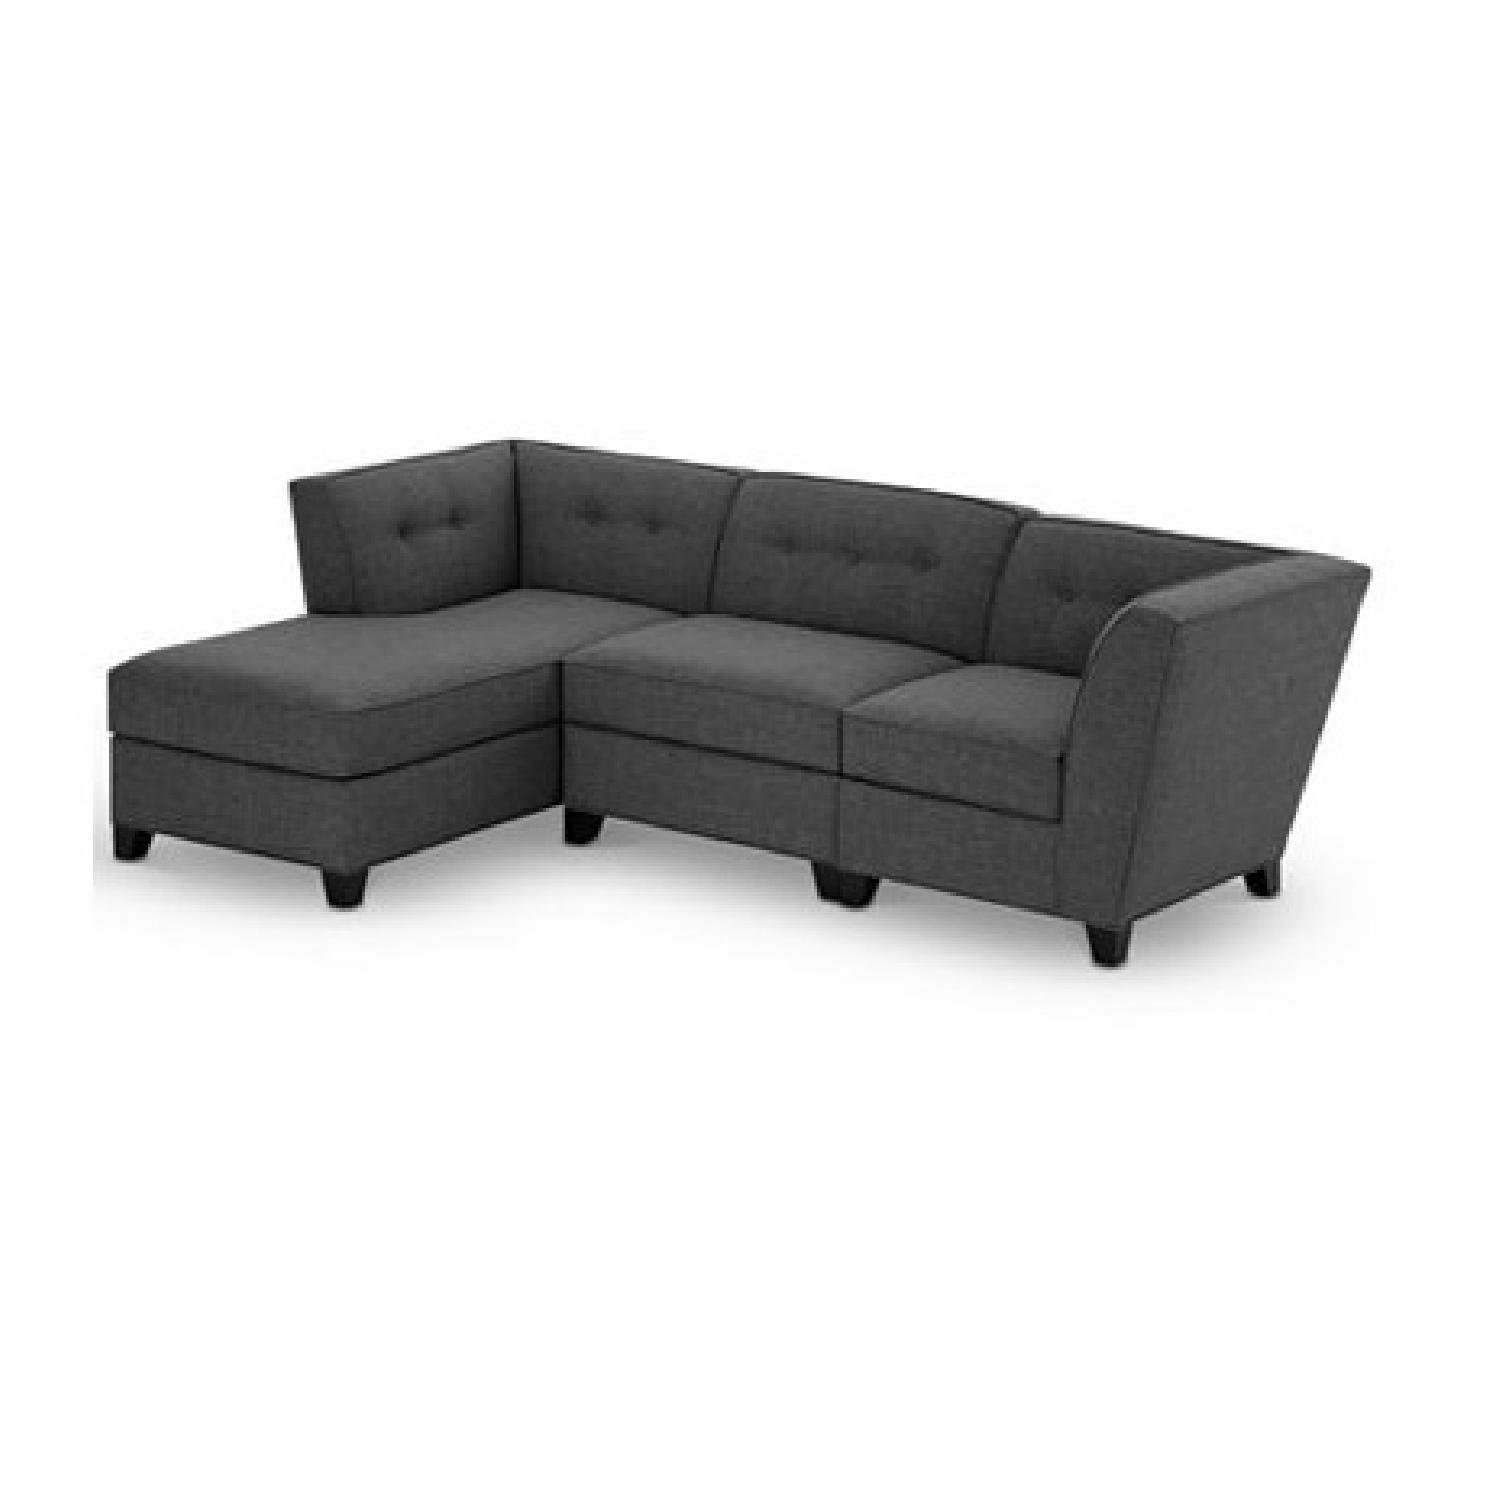 Macy s Harper Fabric 3 Piece Modular Sectional Sofa AptDeco